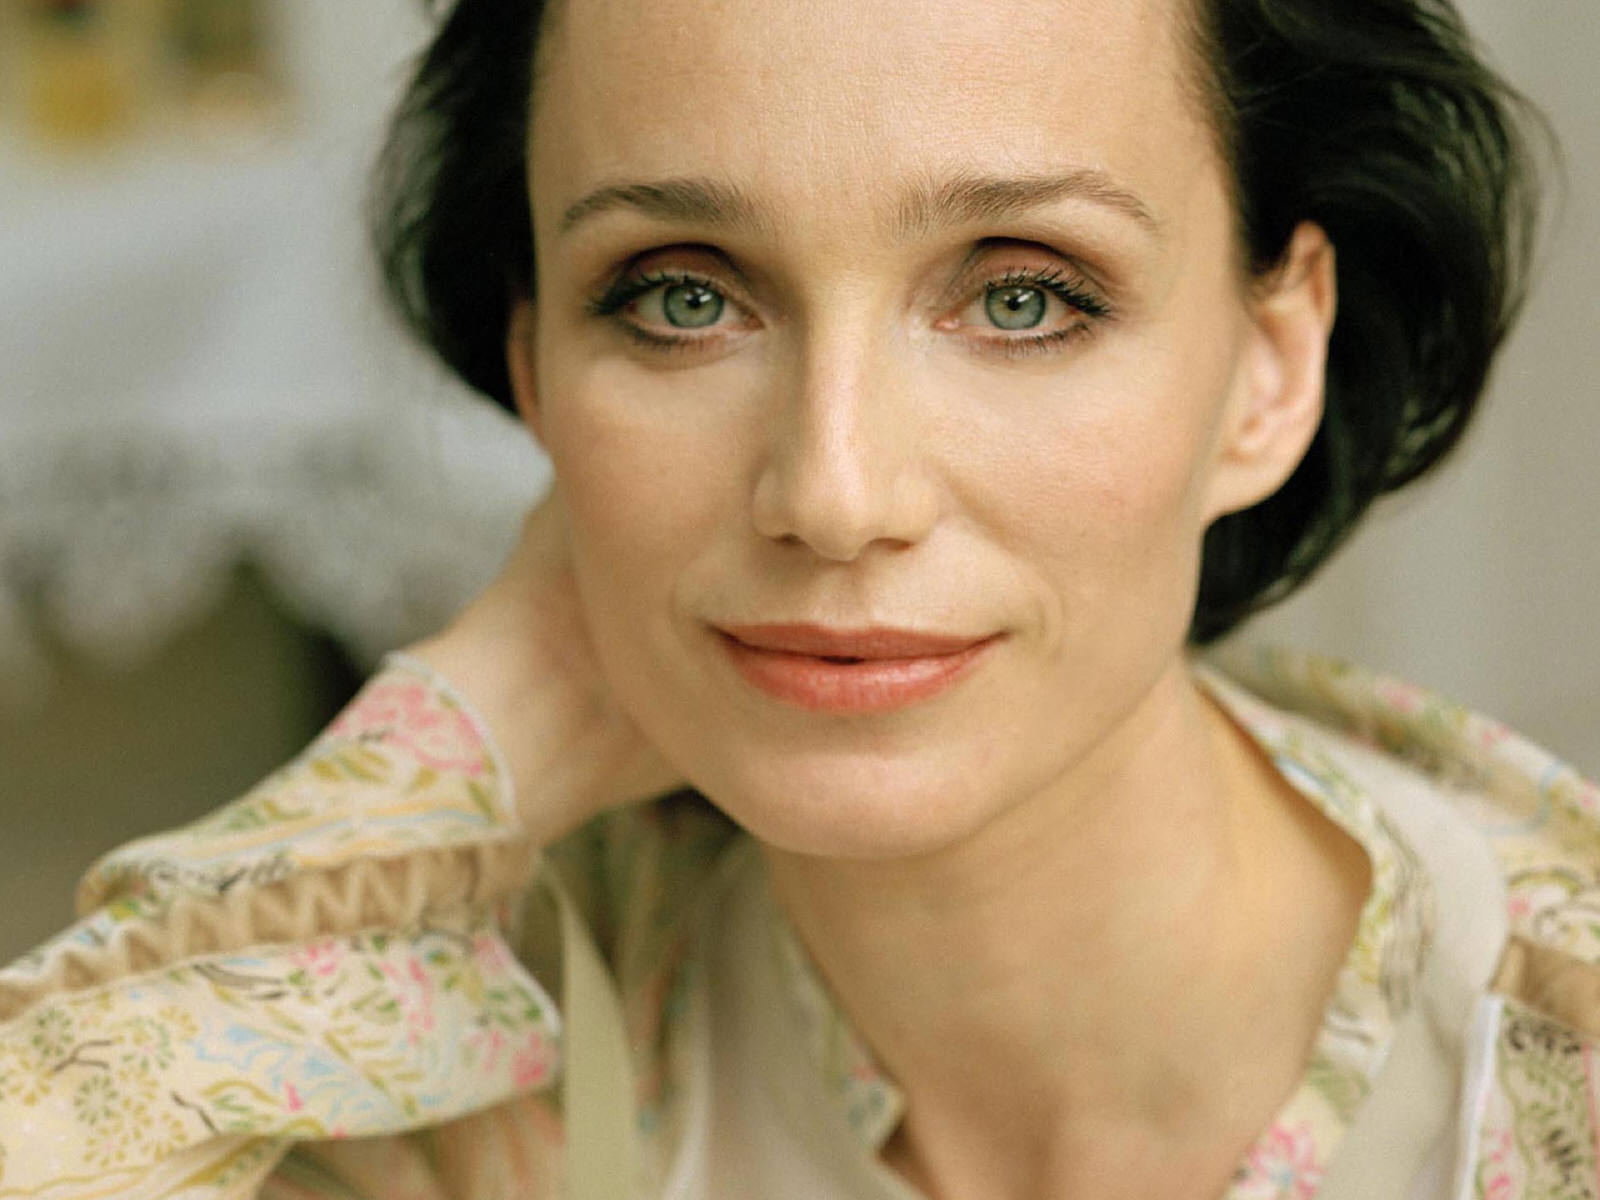 kristin scott thomas moviekristin scott thomas instagram, kristin scott thomas young, kristin scott thomas zimbio, kristin scott thomas movie, kristin scott thomas films, kristin scott thomas top gear, kristin scott thomas wiki, kristin scott thomas 2015, kristin scott thomas lookalike, kristin scott thomas quotes, kristin scott thomas personal life, kristin scott thomas gif hunt, kristin scott thomas hugh grant movie, kristin scott thomas 2016, kristin scott thomas 2017, kristin scott thomas french, kristin scott thomas facebook, kristin scott thomas patrick swayze, kristin scott thomas husband, kristin scott thomas arsene lupin